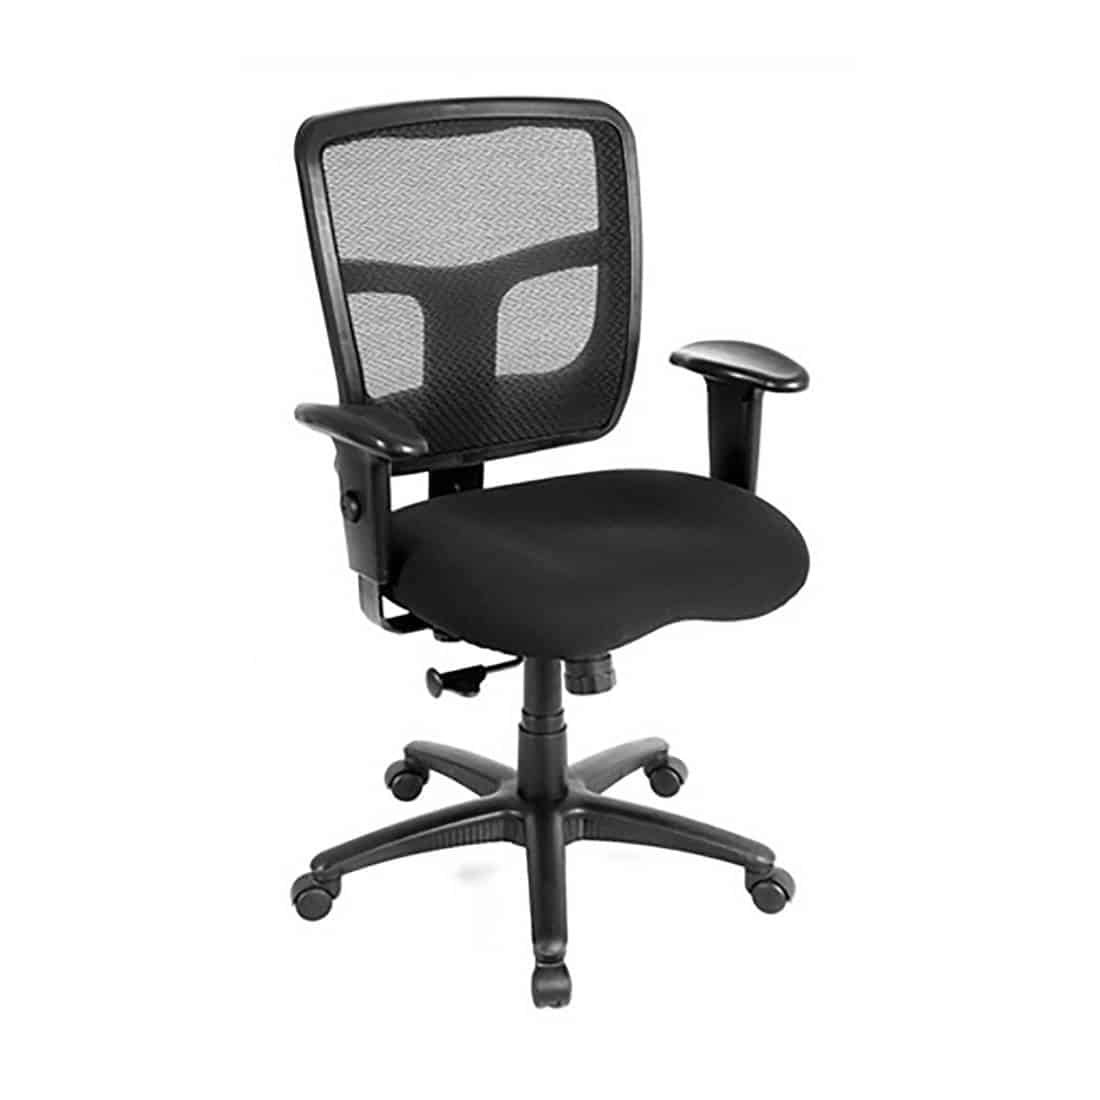 Friant Zone Classic Mesh Back Desk Chair with 2-way Adjustable Arms